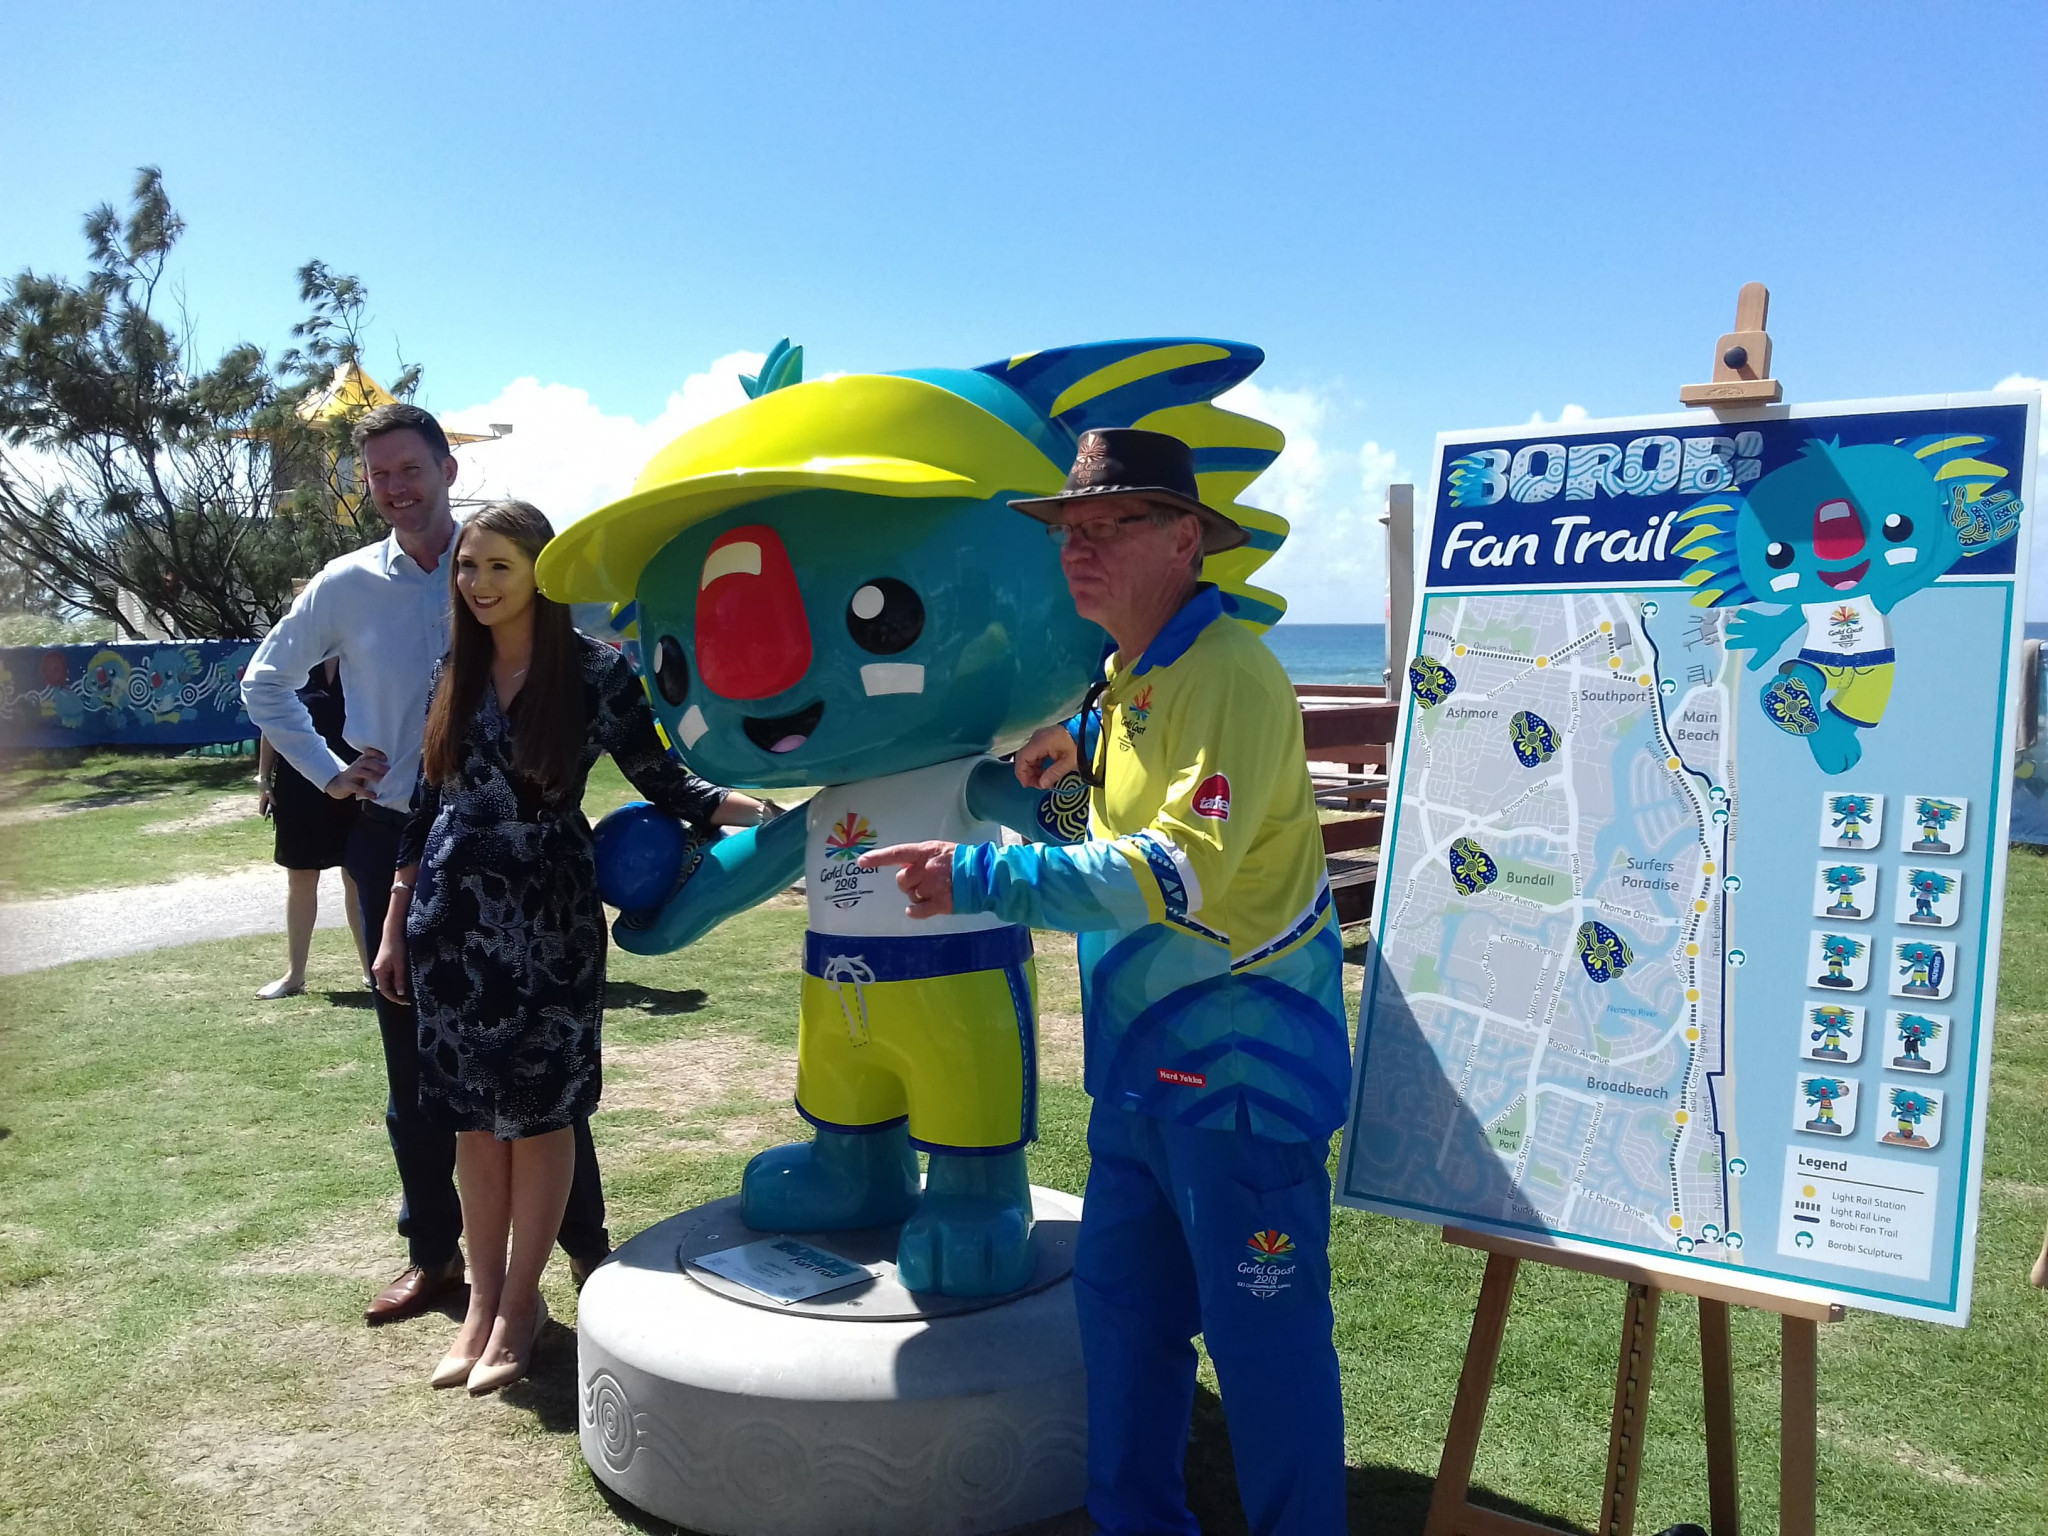 Gold Coast 2018 launched the trail at the Broadbeach lawn bowls venue ©ITG